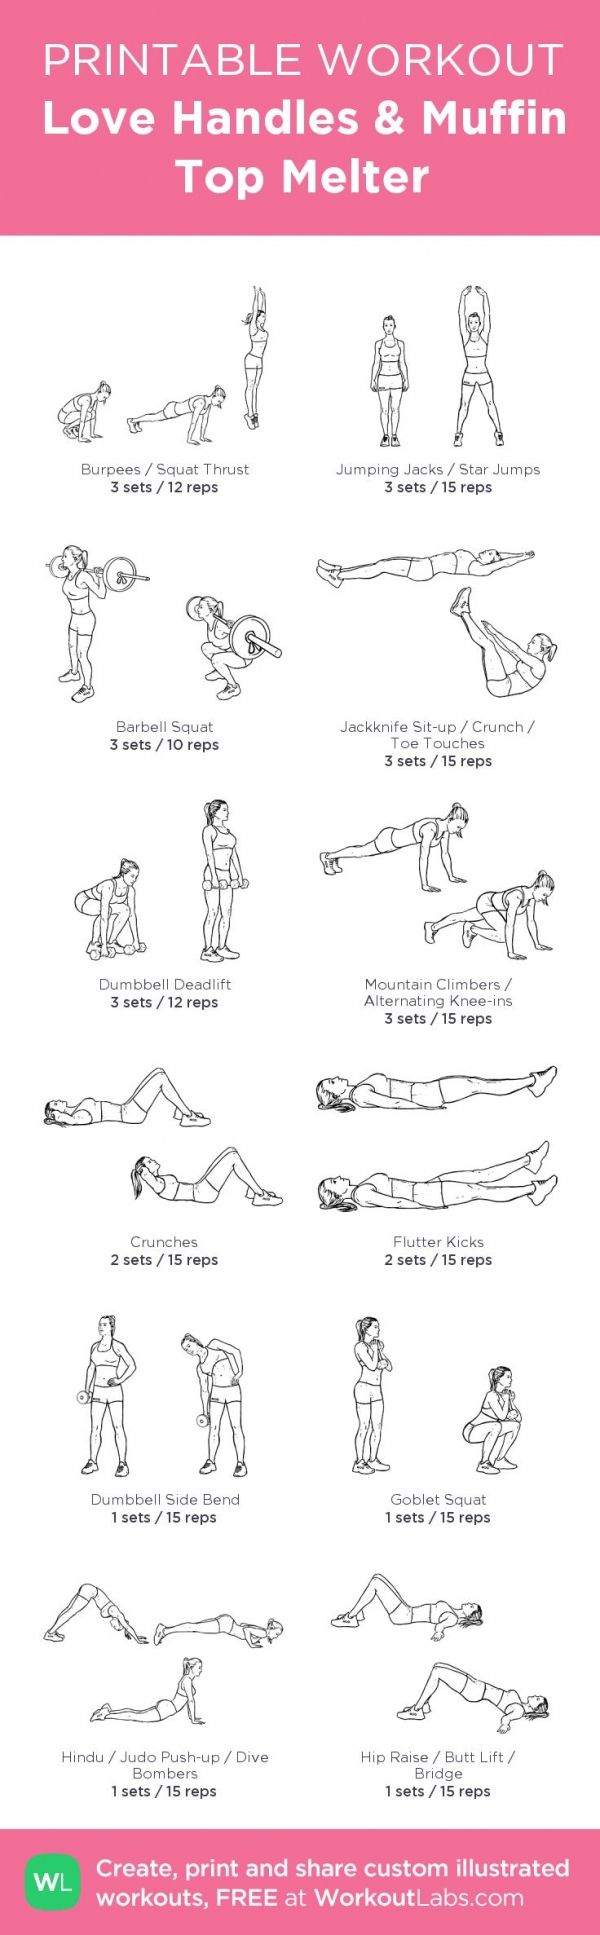 Loathe Your Love Handles? These 26 Exercises Can Banish Them for Good! → Fitness